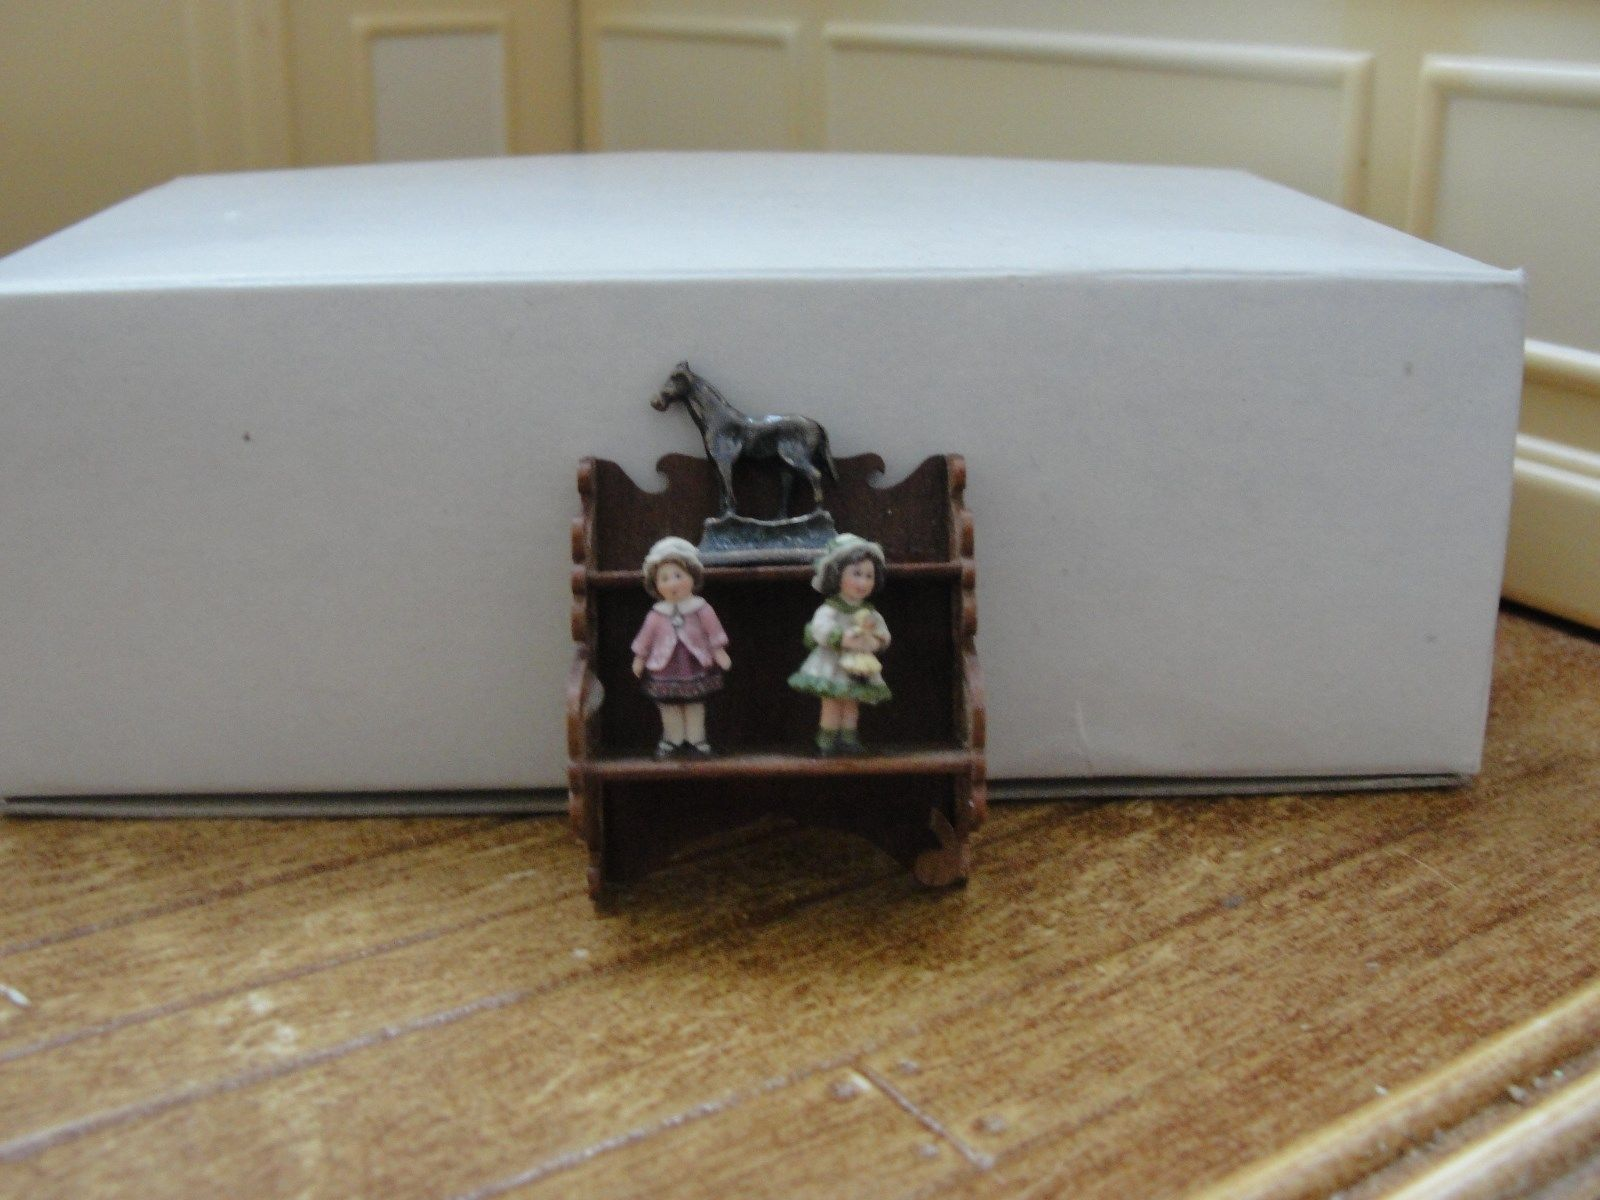 Dollhouse Miniature Wood Curio Shelf w Accessories  https://t.co/NeptqXgrKj https://t.co/d1lhhy6dSj